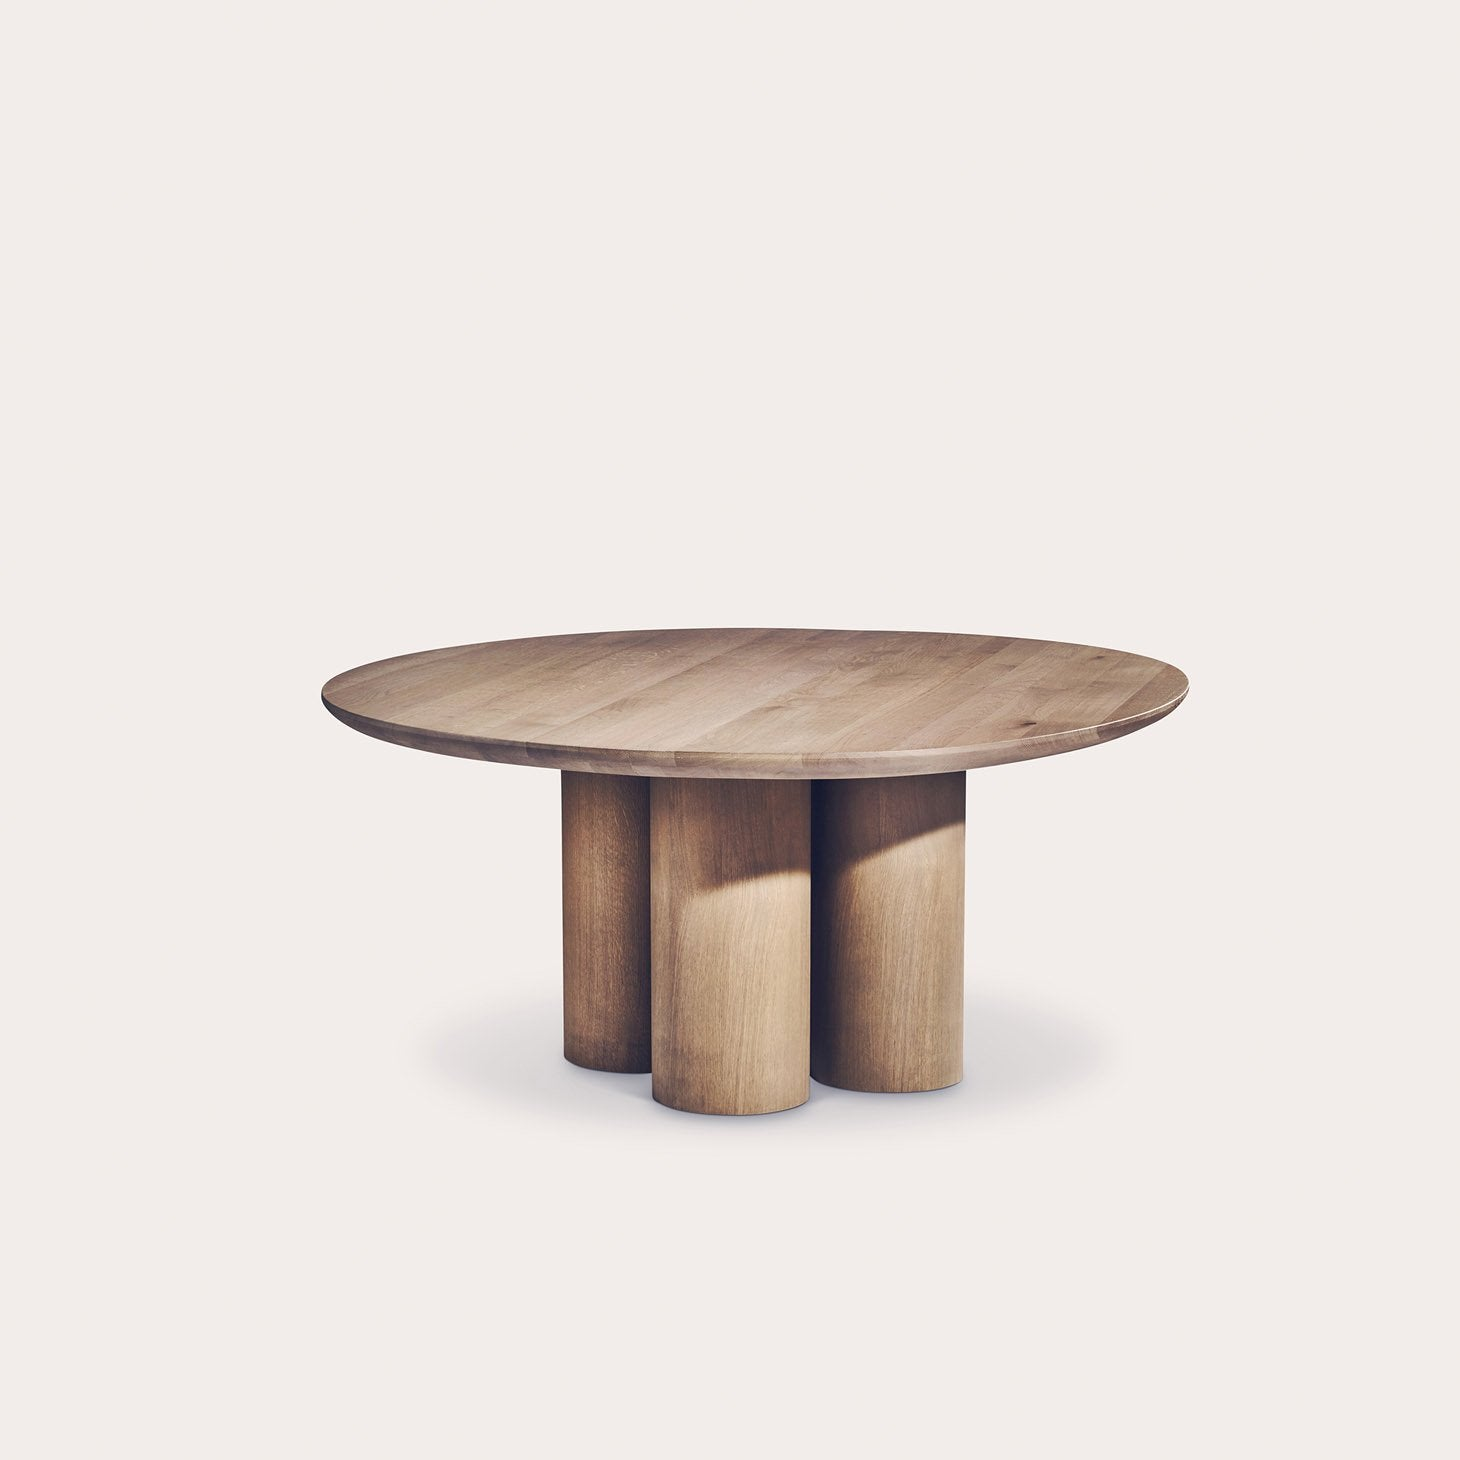 Olle Tables Piet Boon Designer Furniture Sku: 784-230-10017